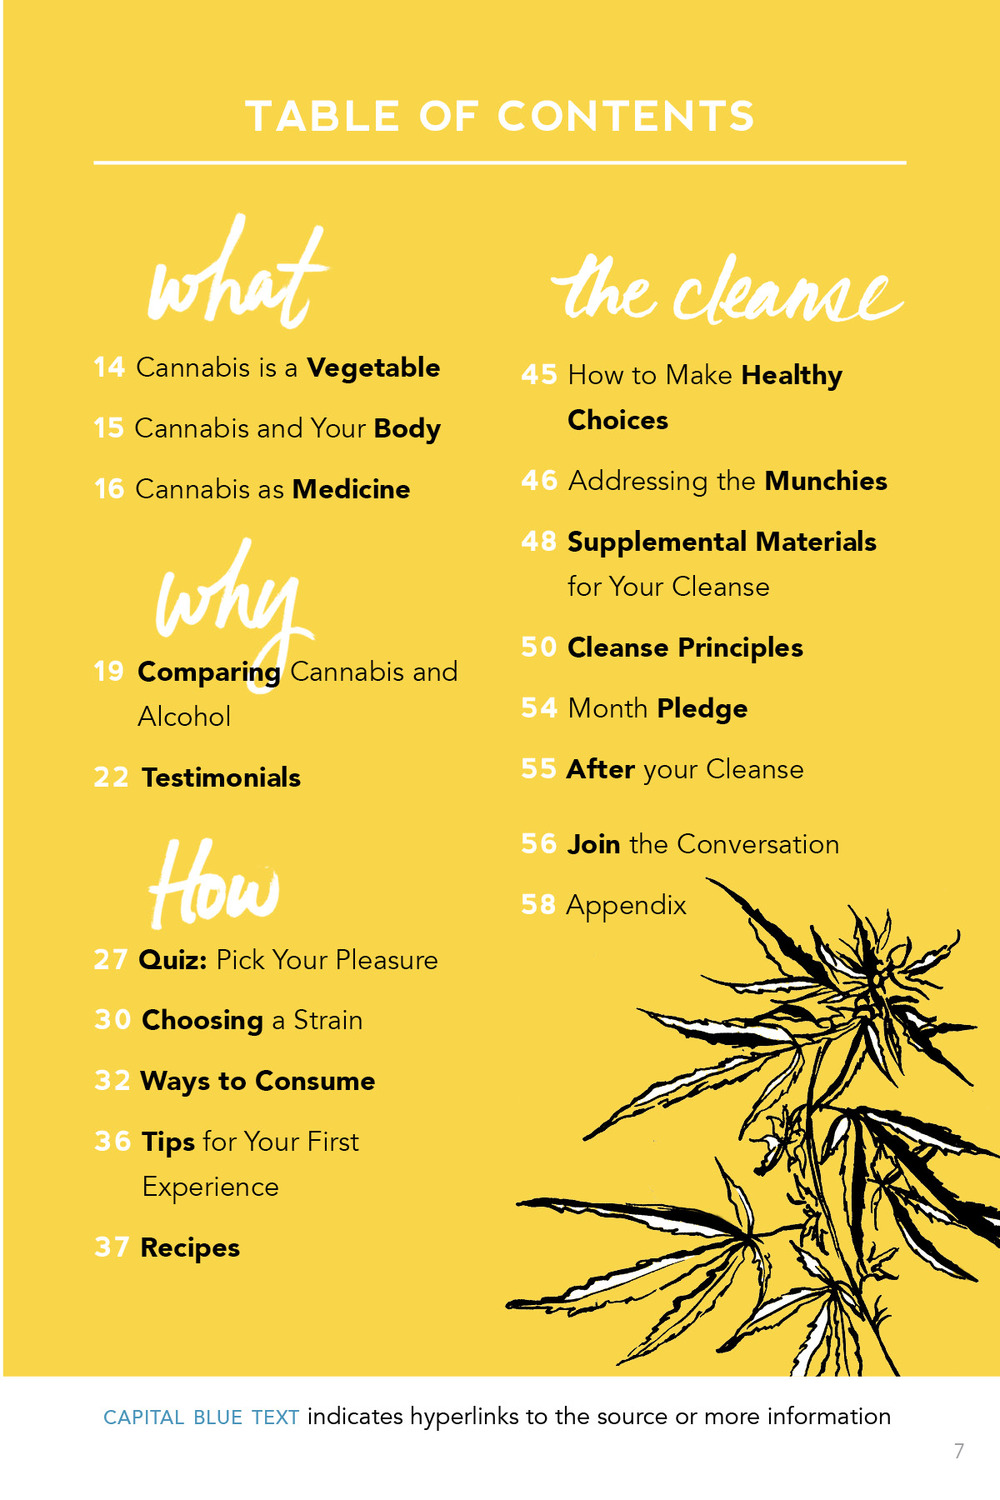 Cannabis Cleanse Table of Contents